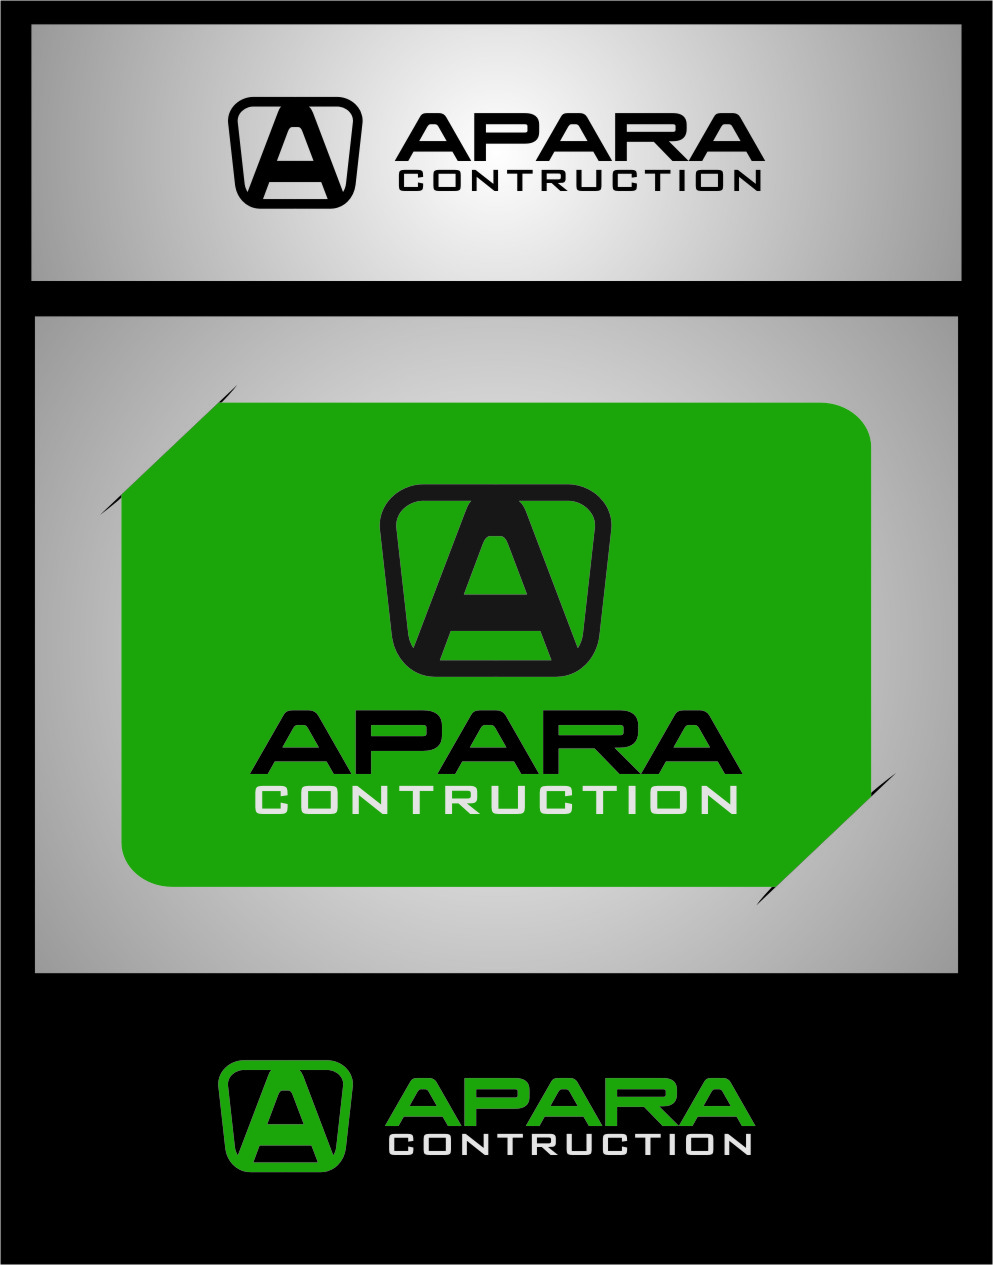 Logo Design by RasYa Muhammad Athaya - Entry No. 186 in the Logo Design Contest Apara Construction Logo Design.